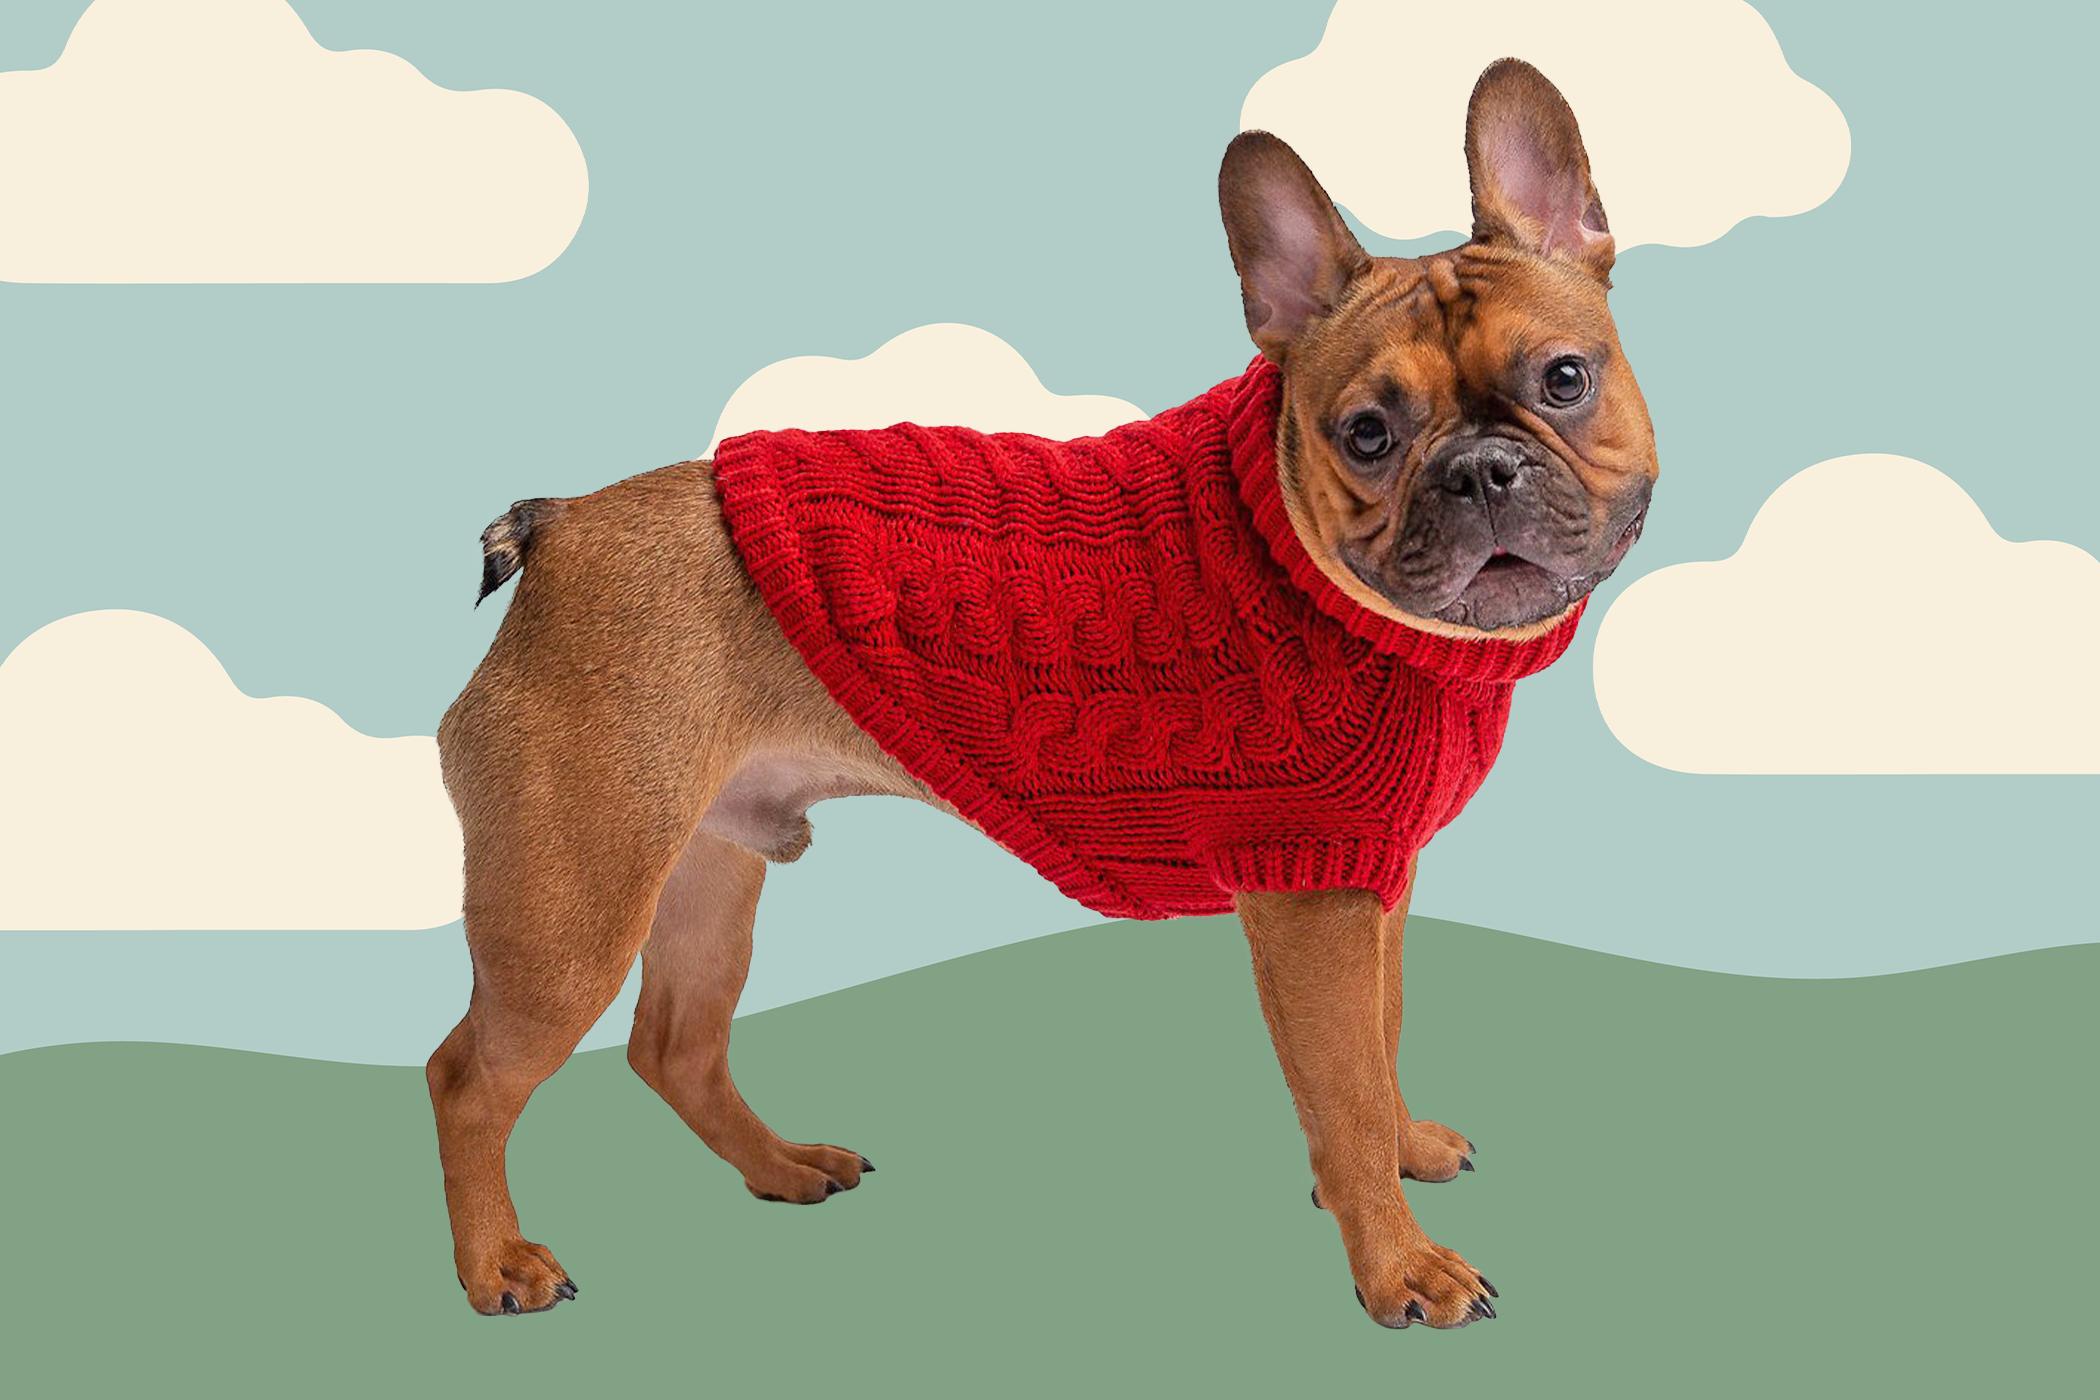 dog wearing red sweater on a illustrated background with clouds and grass